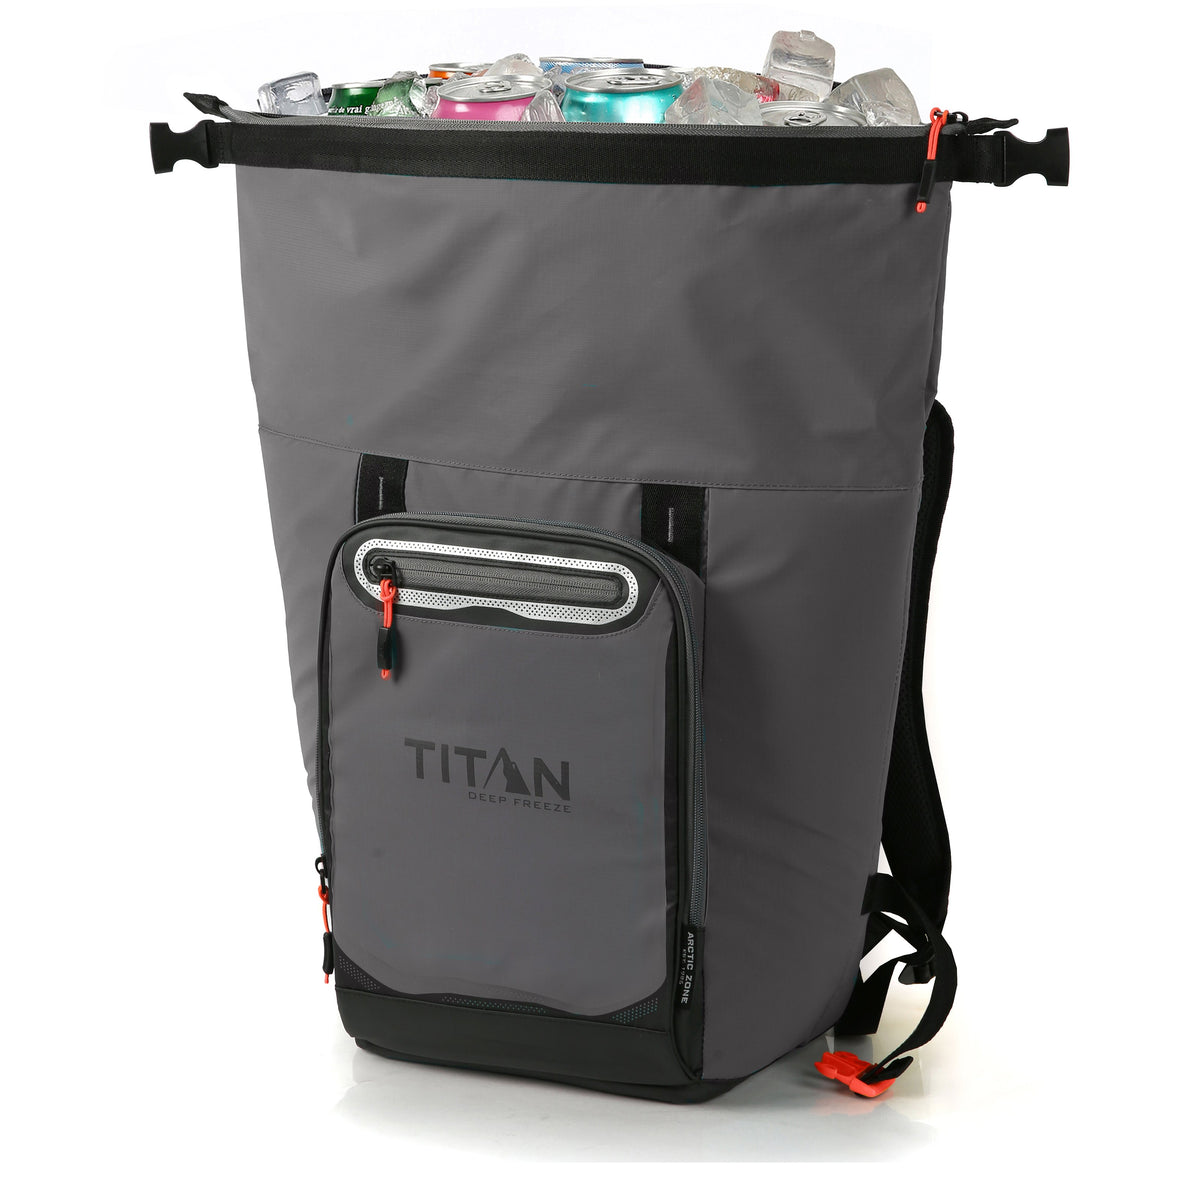 Titan Deep Freeze® 20 Can Rolltop Backpack - Sharkskin Gray - Unrolled, propped